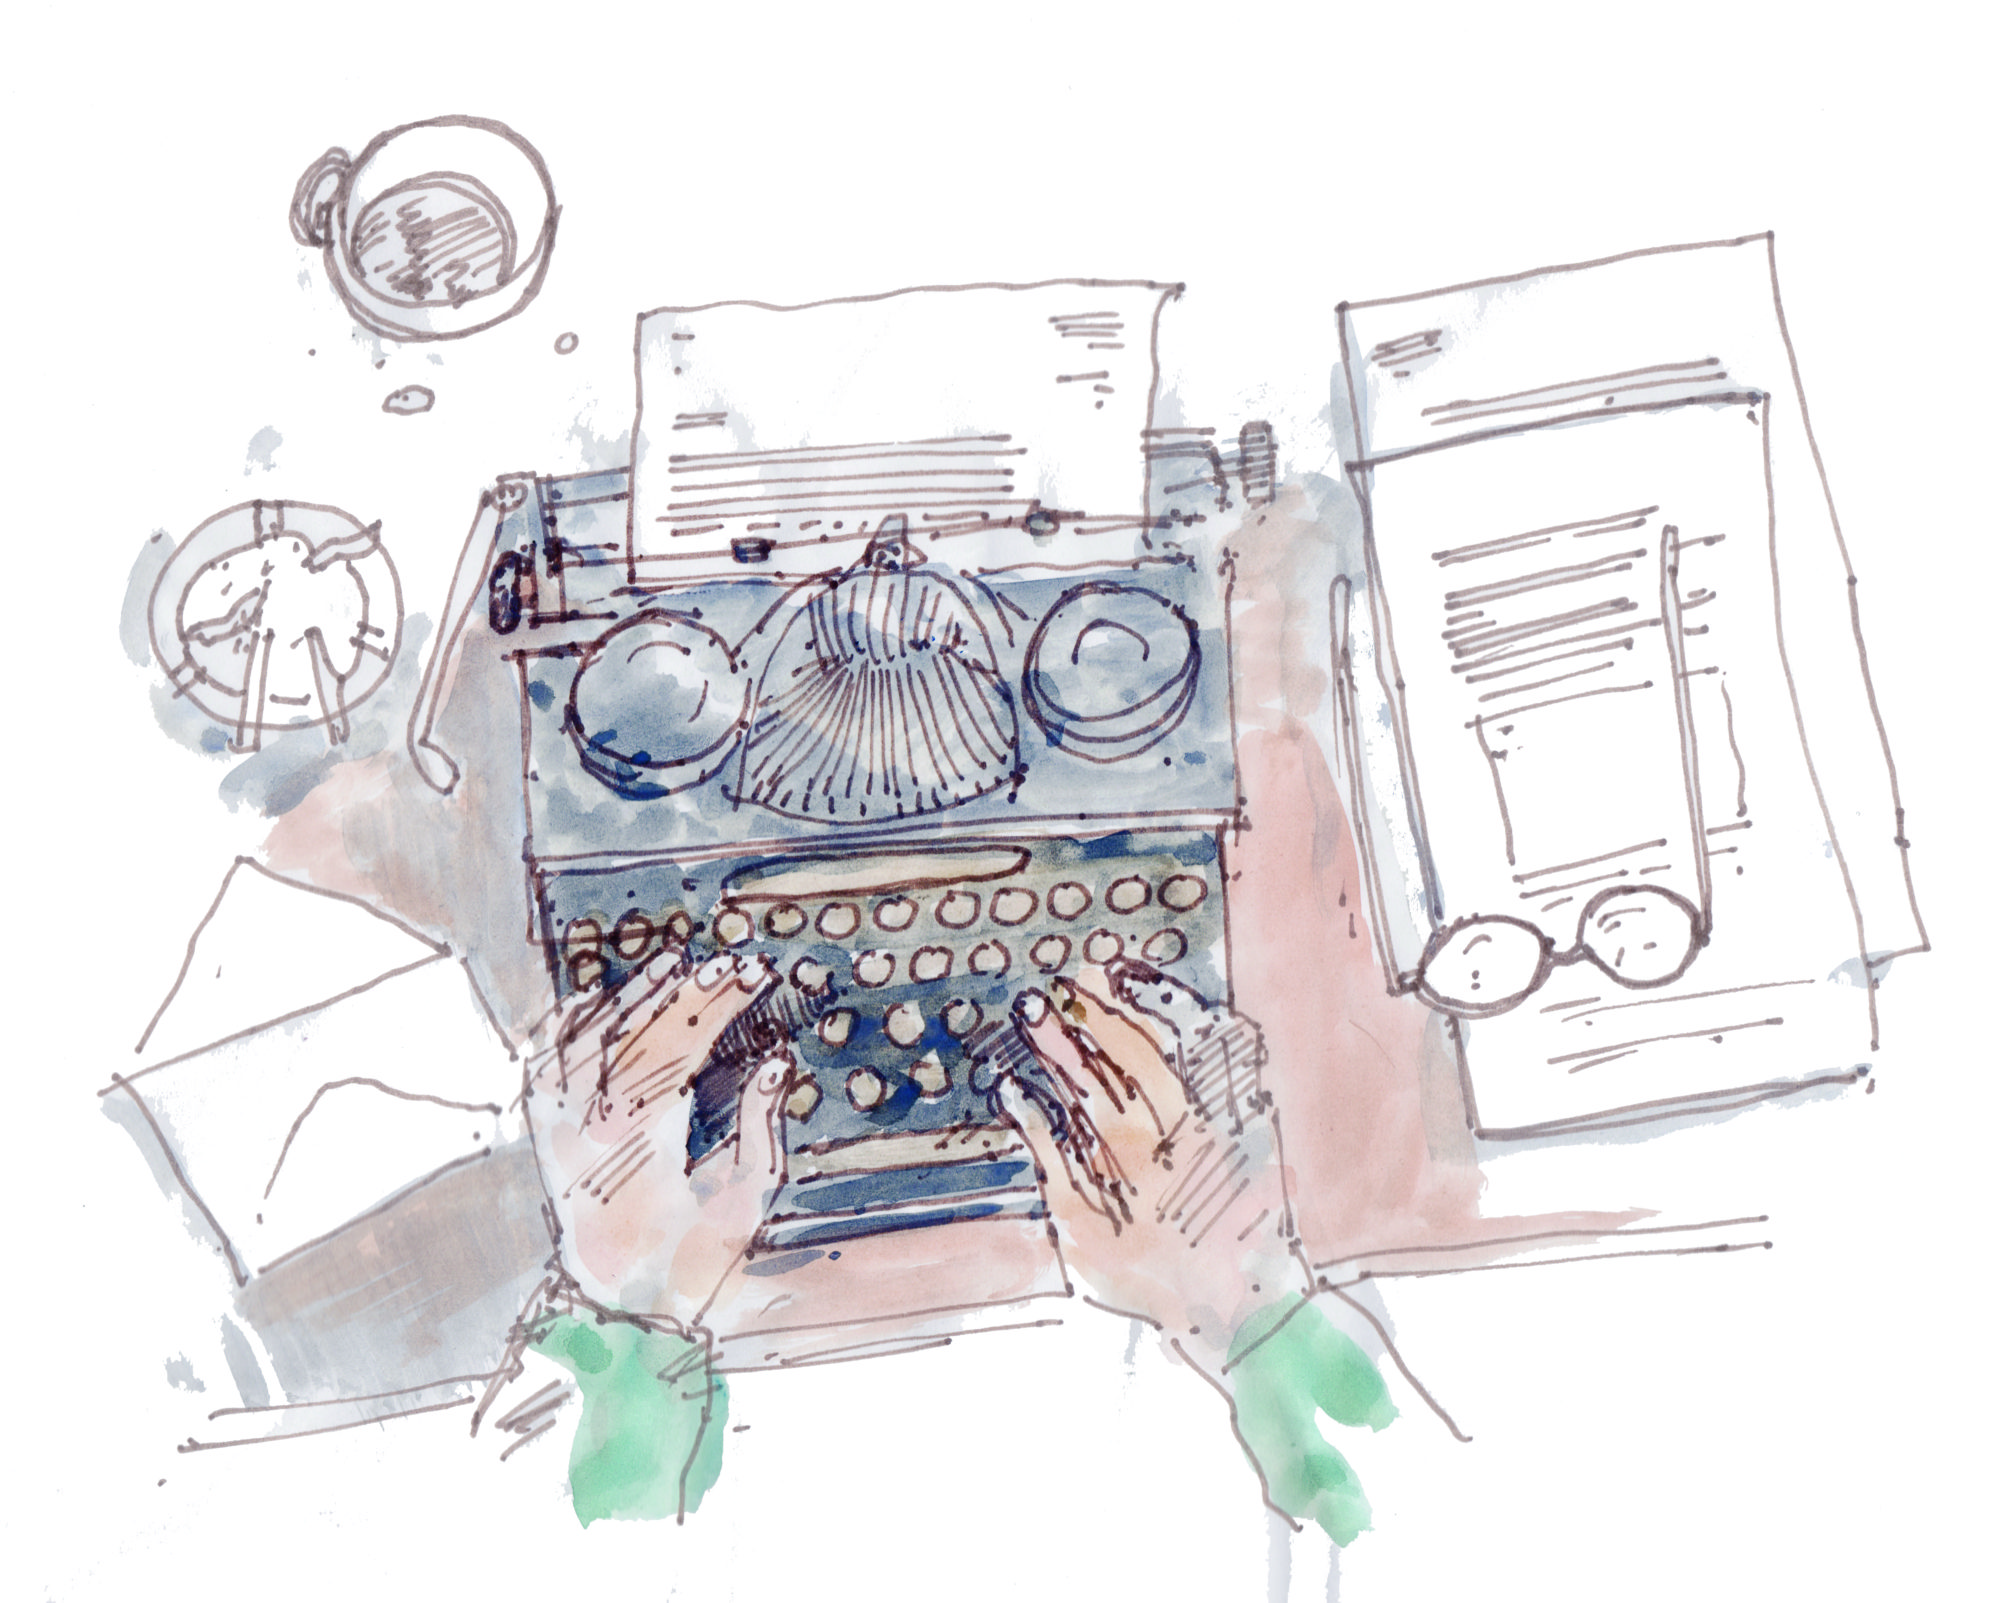 illustration of hands typing on a typewriter seen from above, on a cluttered desk